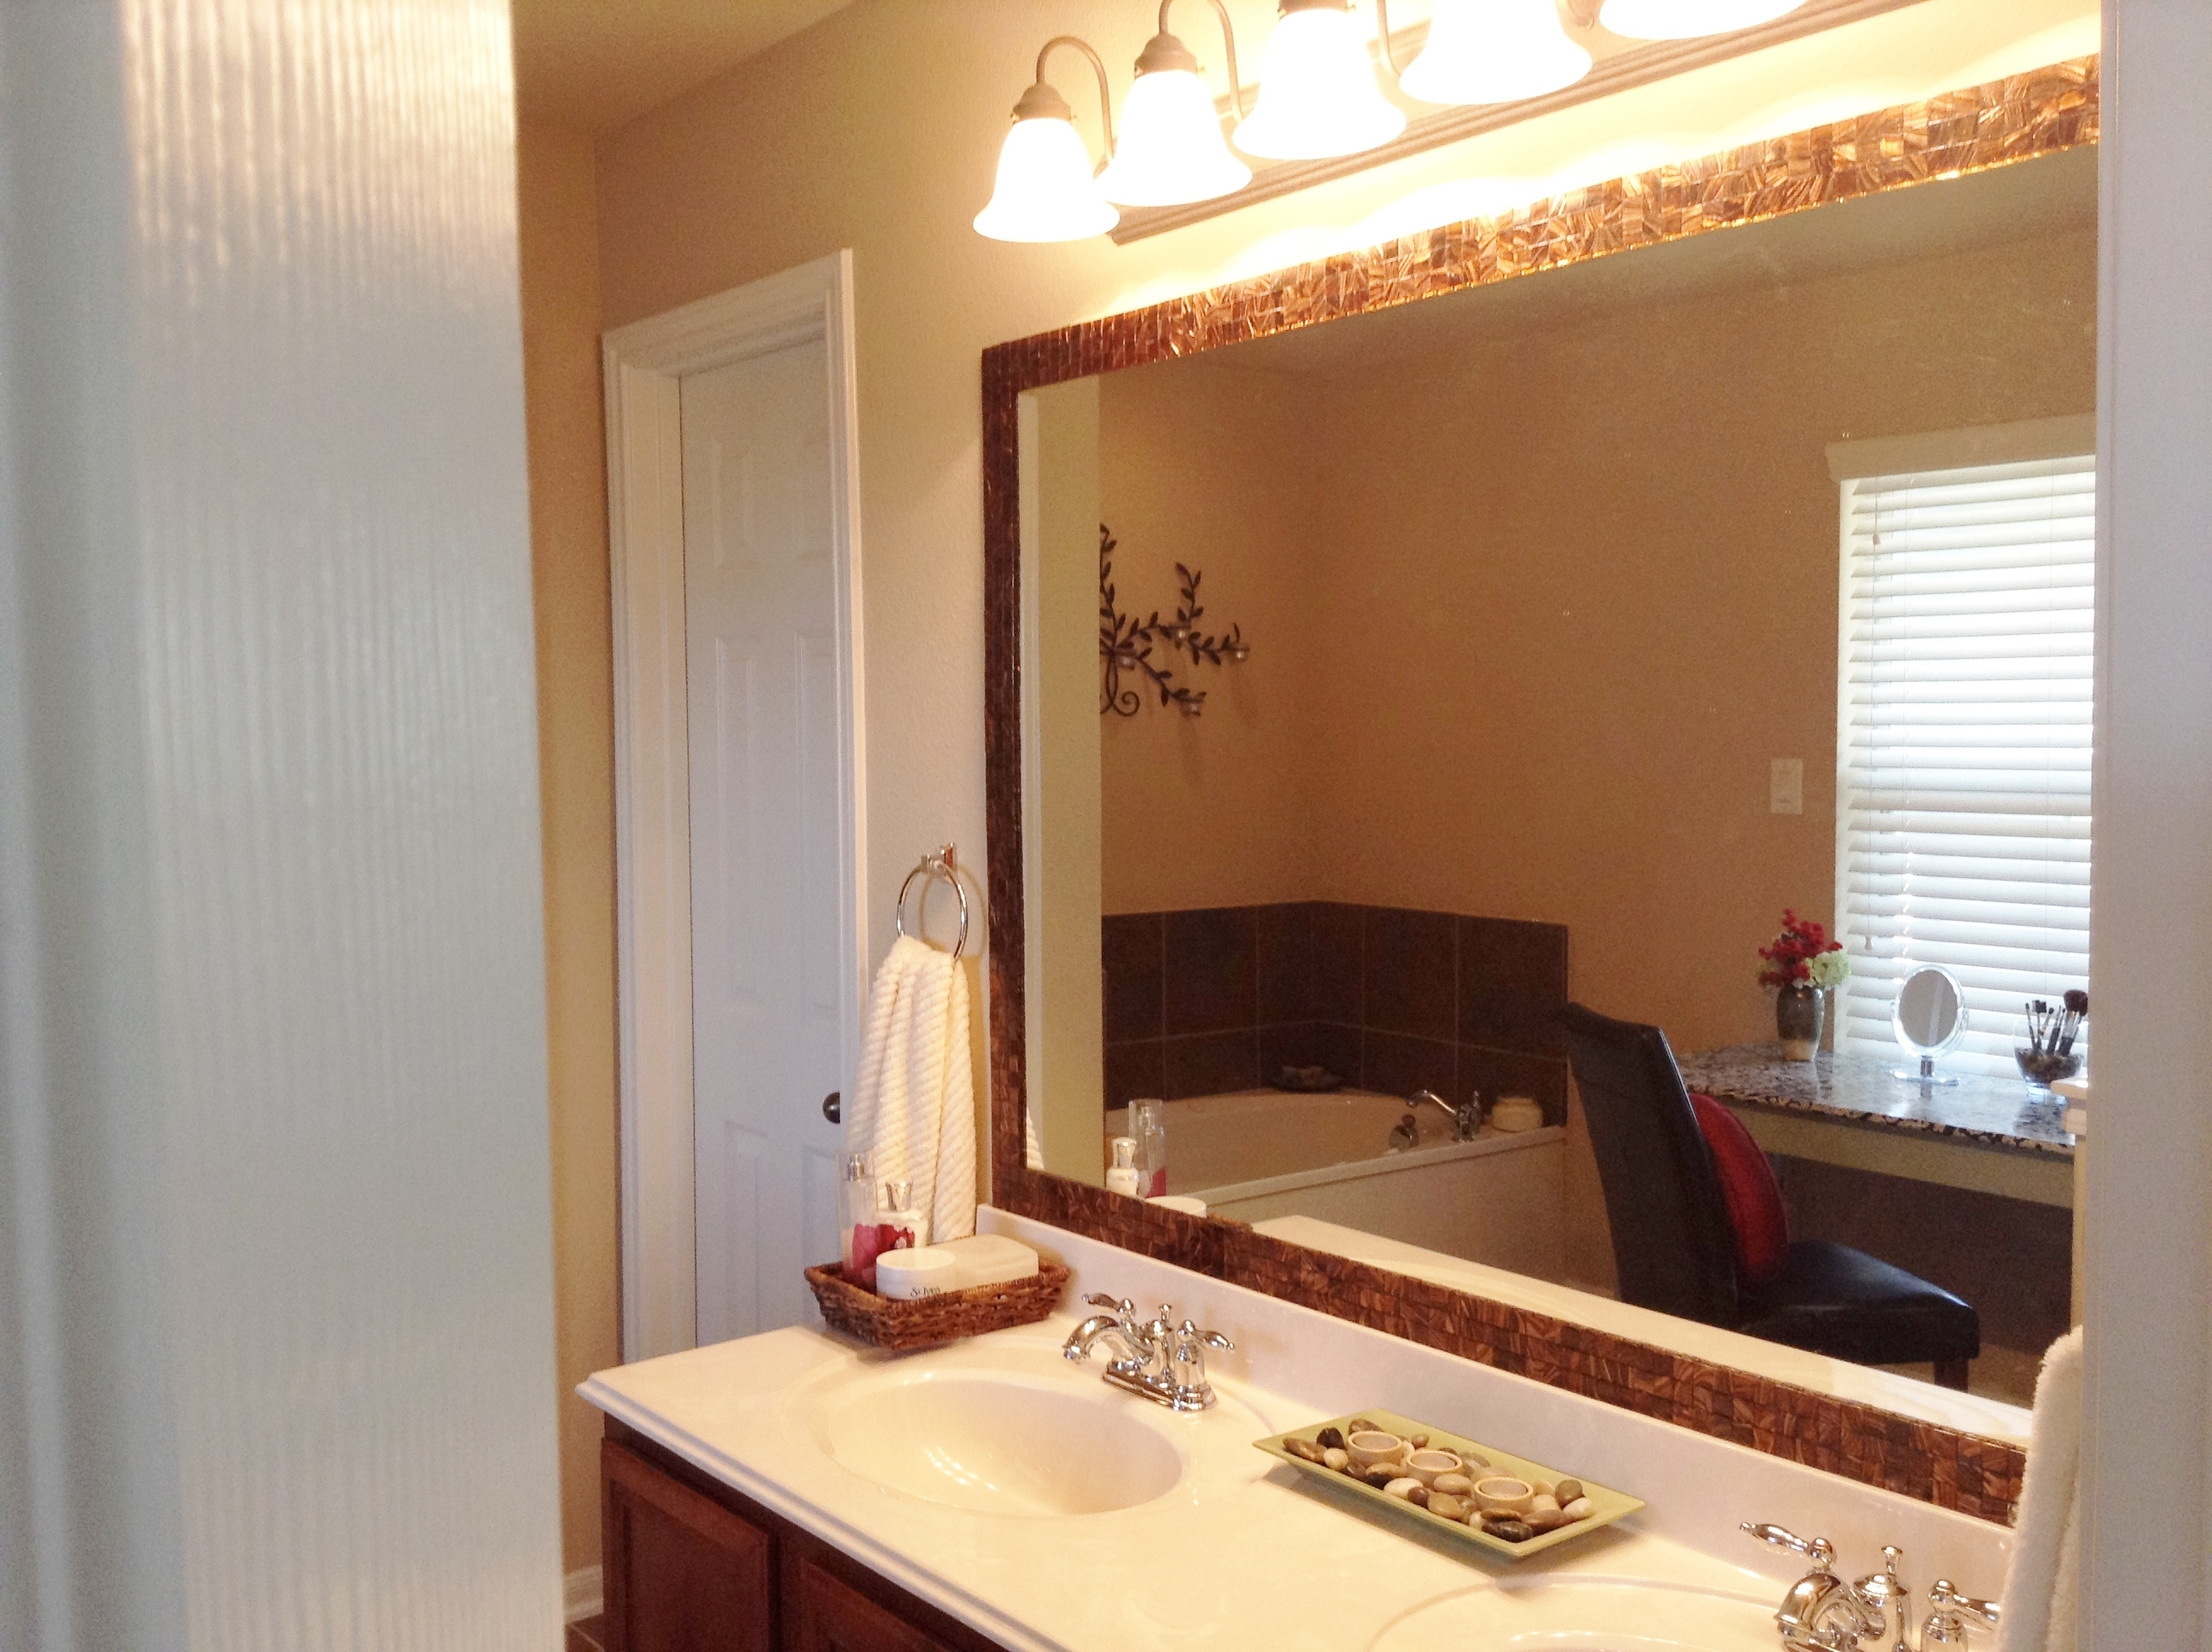 Framing Bathroom Mirrors With Tile